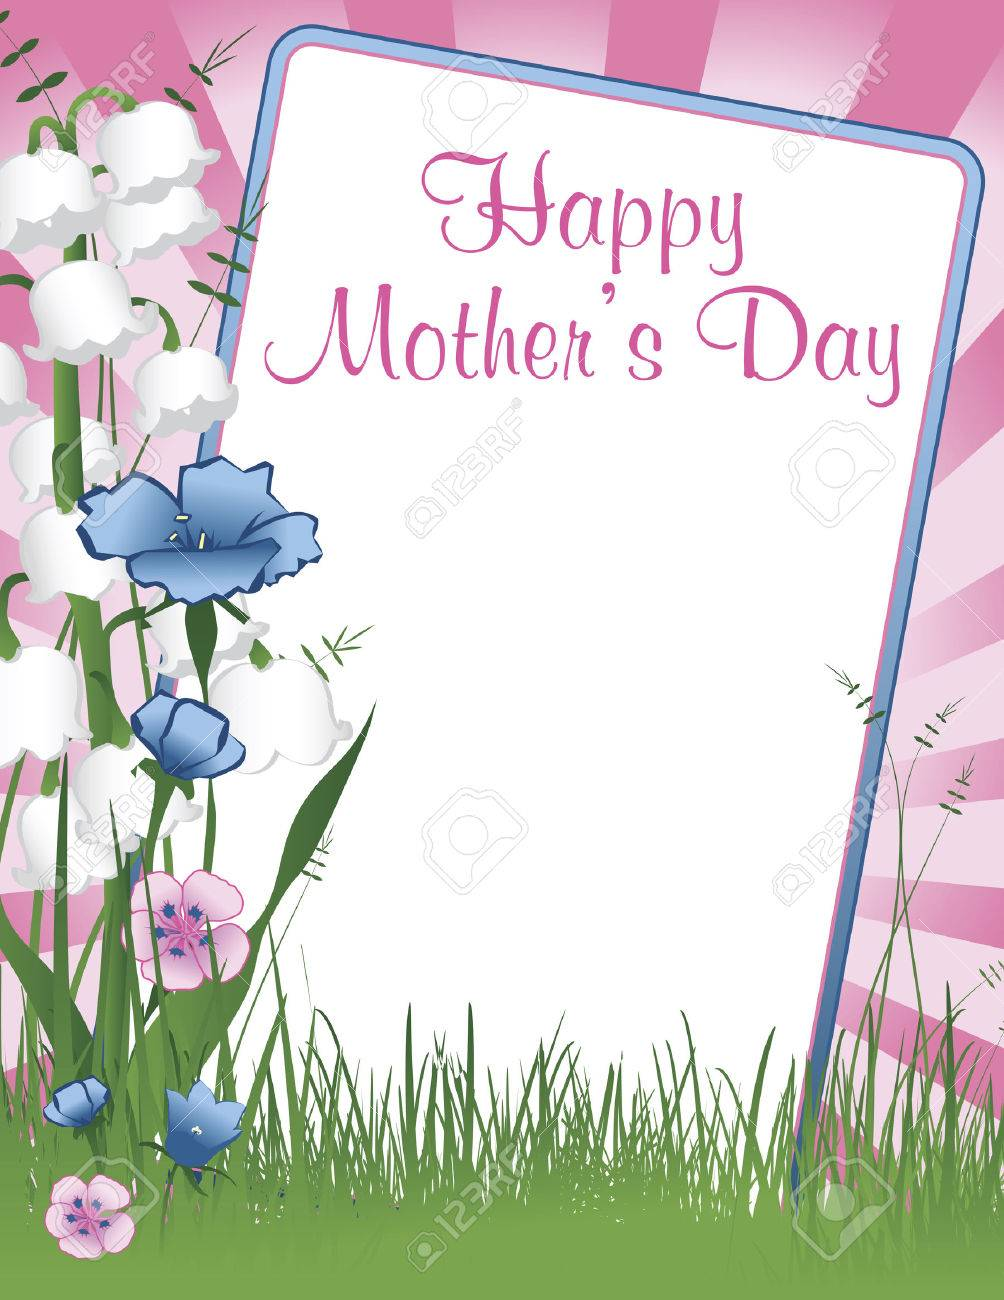 Illustration Background With A Frame Of Happy Mothers Day With ...